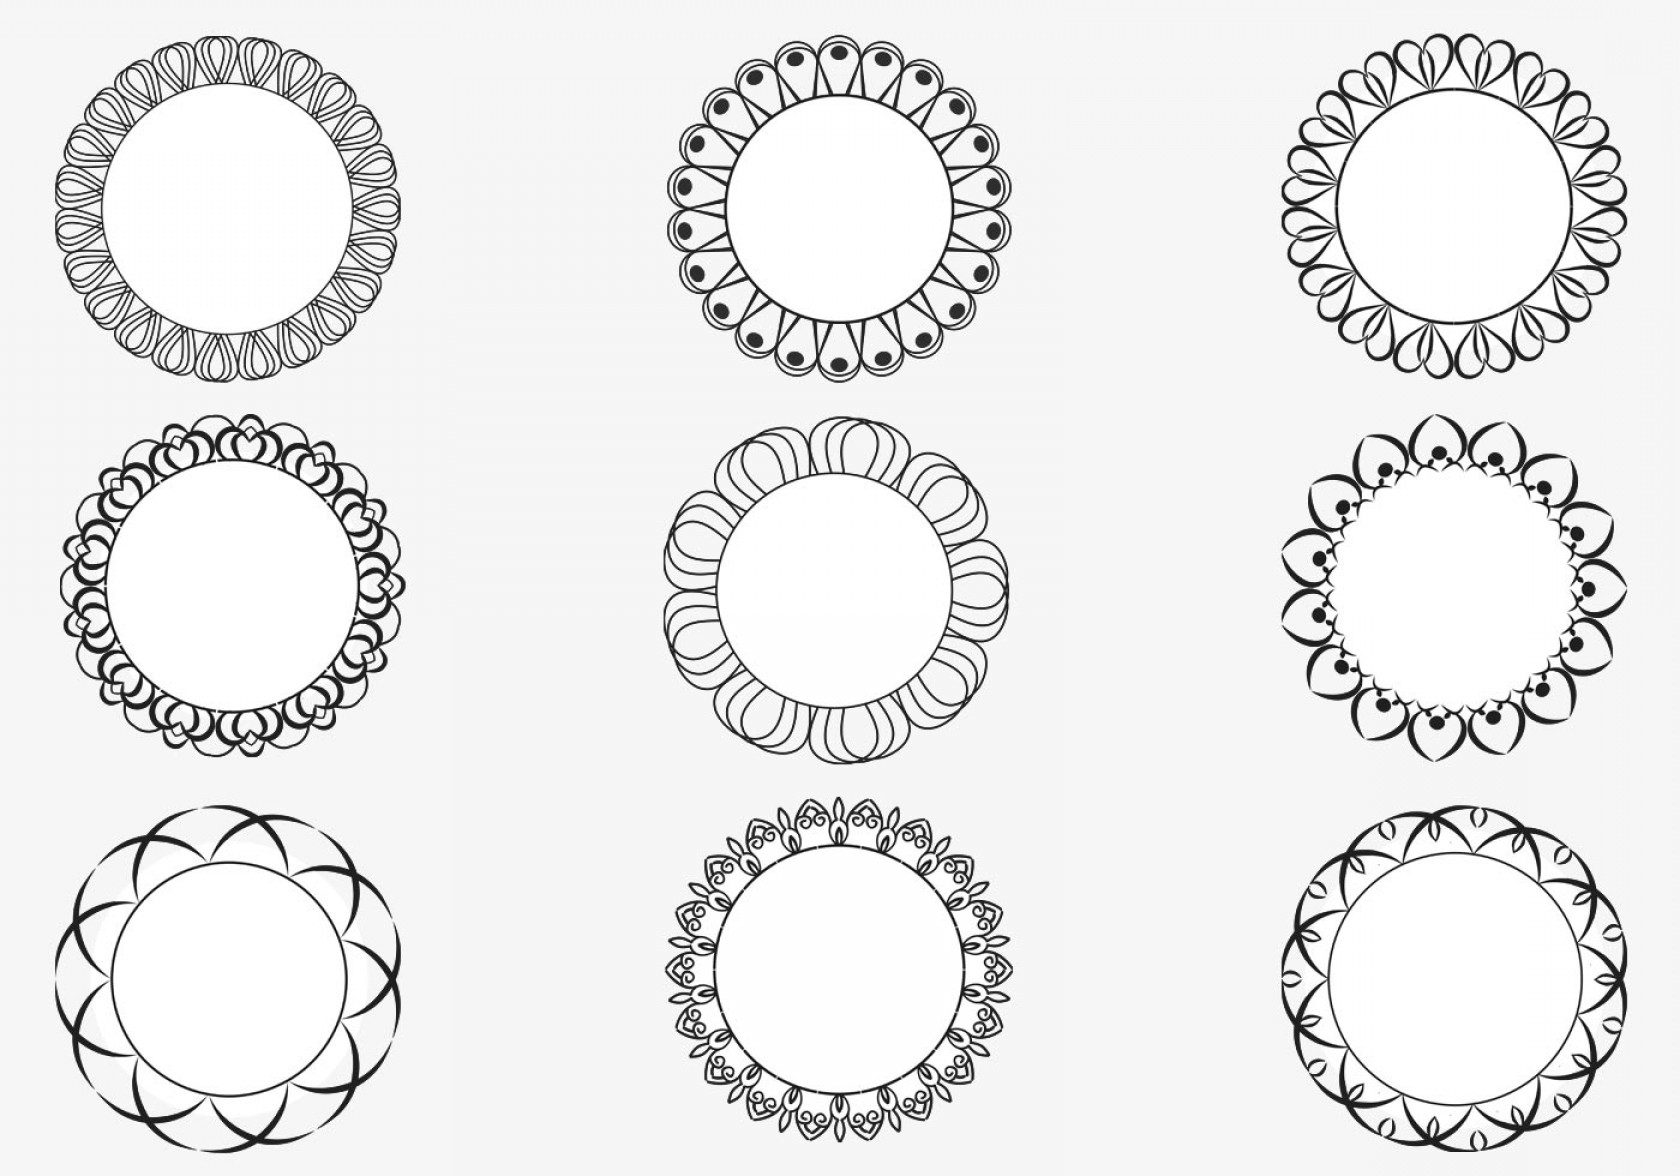 1680x1176 Decorative Circular Frame Vector Pack Shopatcloth